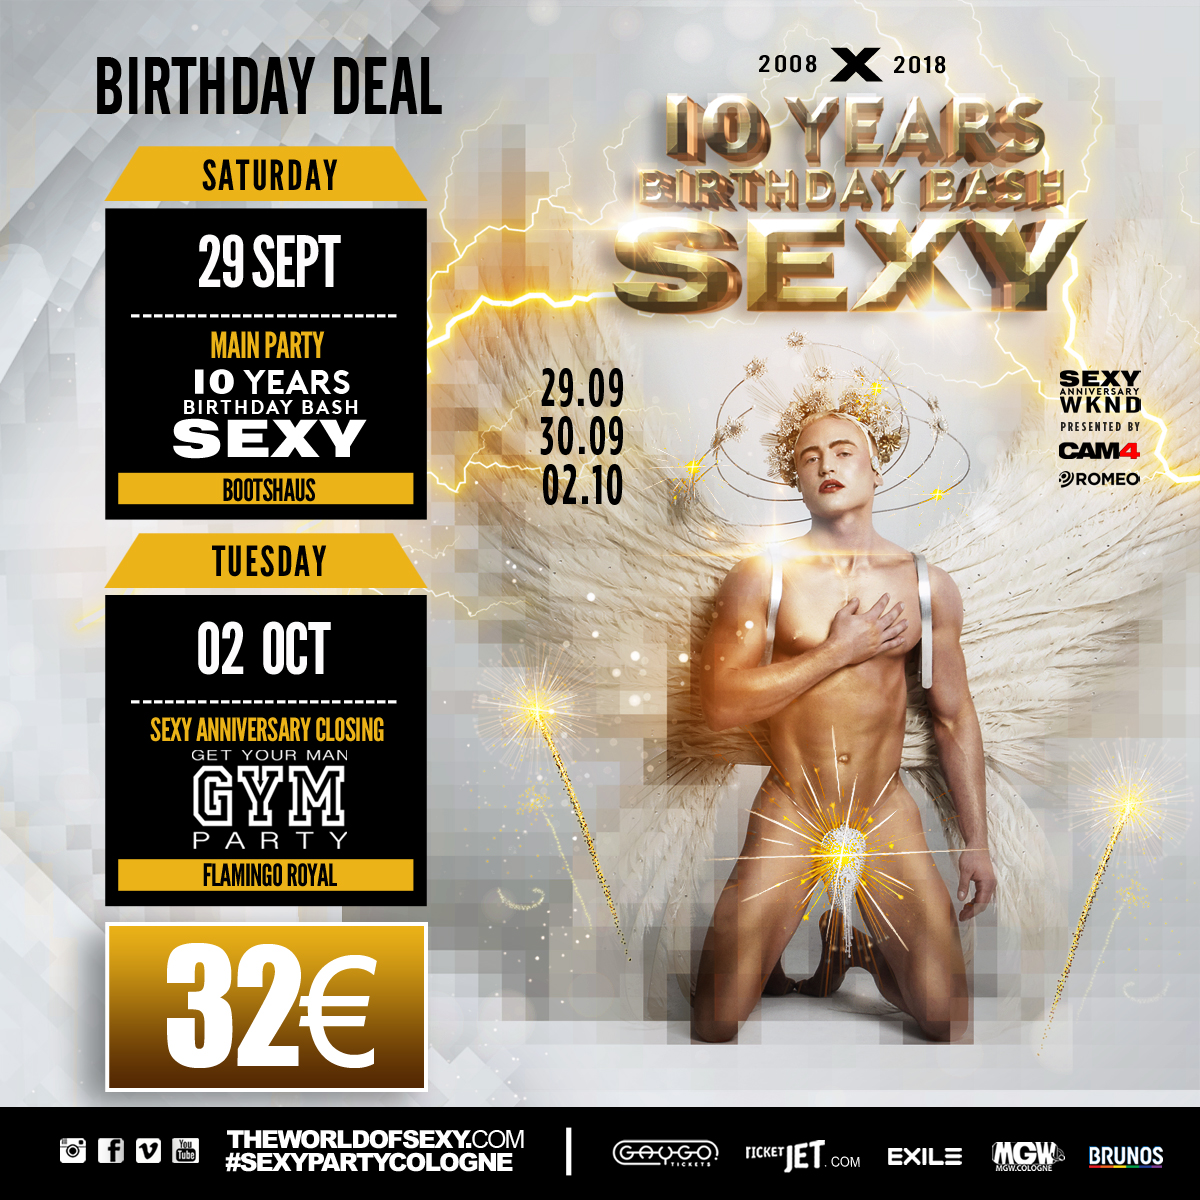 , +++ BEST PRICE BIRTHDAY DEAL +++